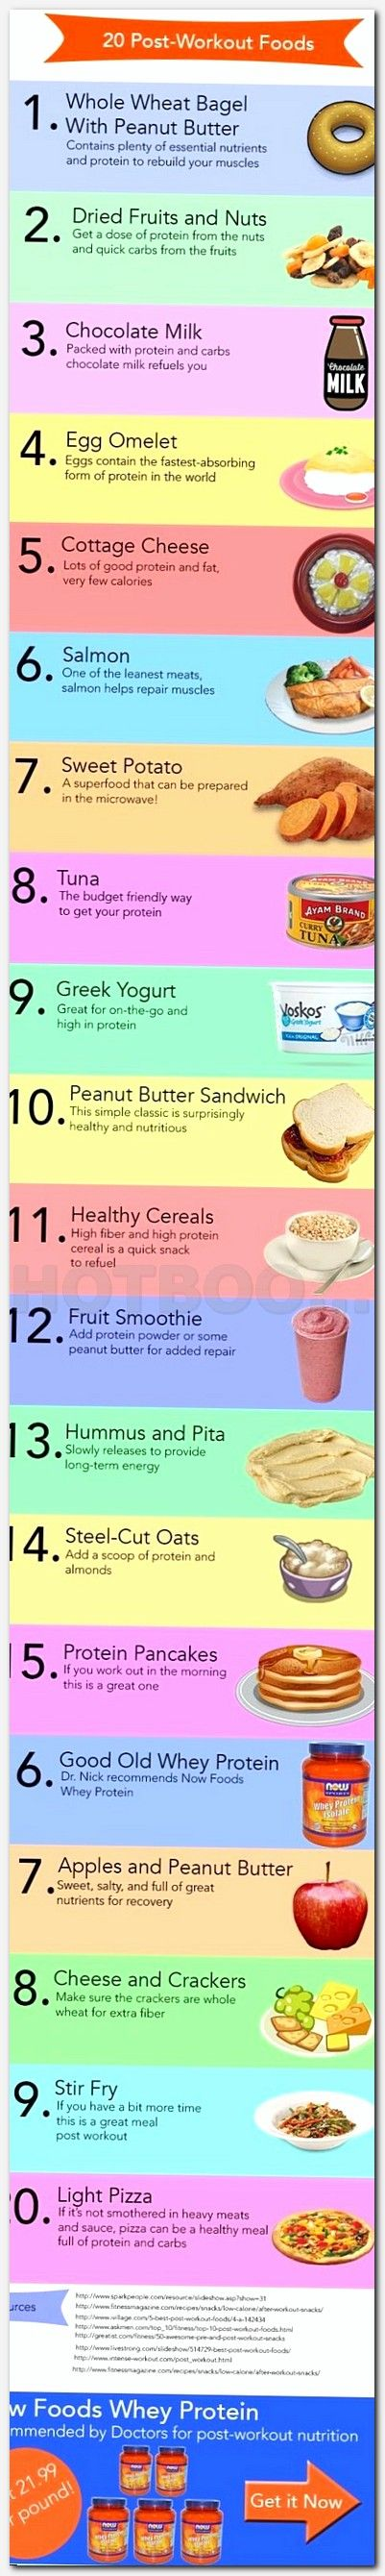 Fast Weight Loss Tips For Women, Exercises For The Gym To Lose Weight, Zone